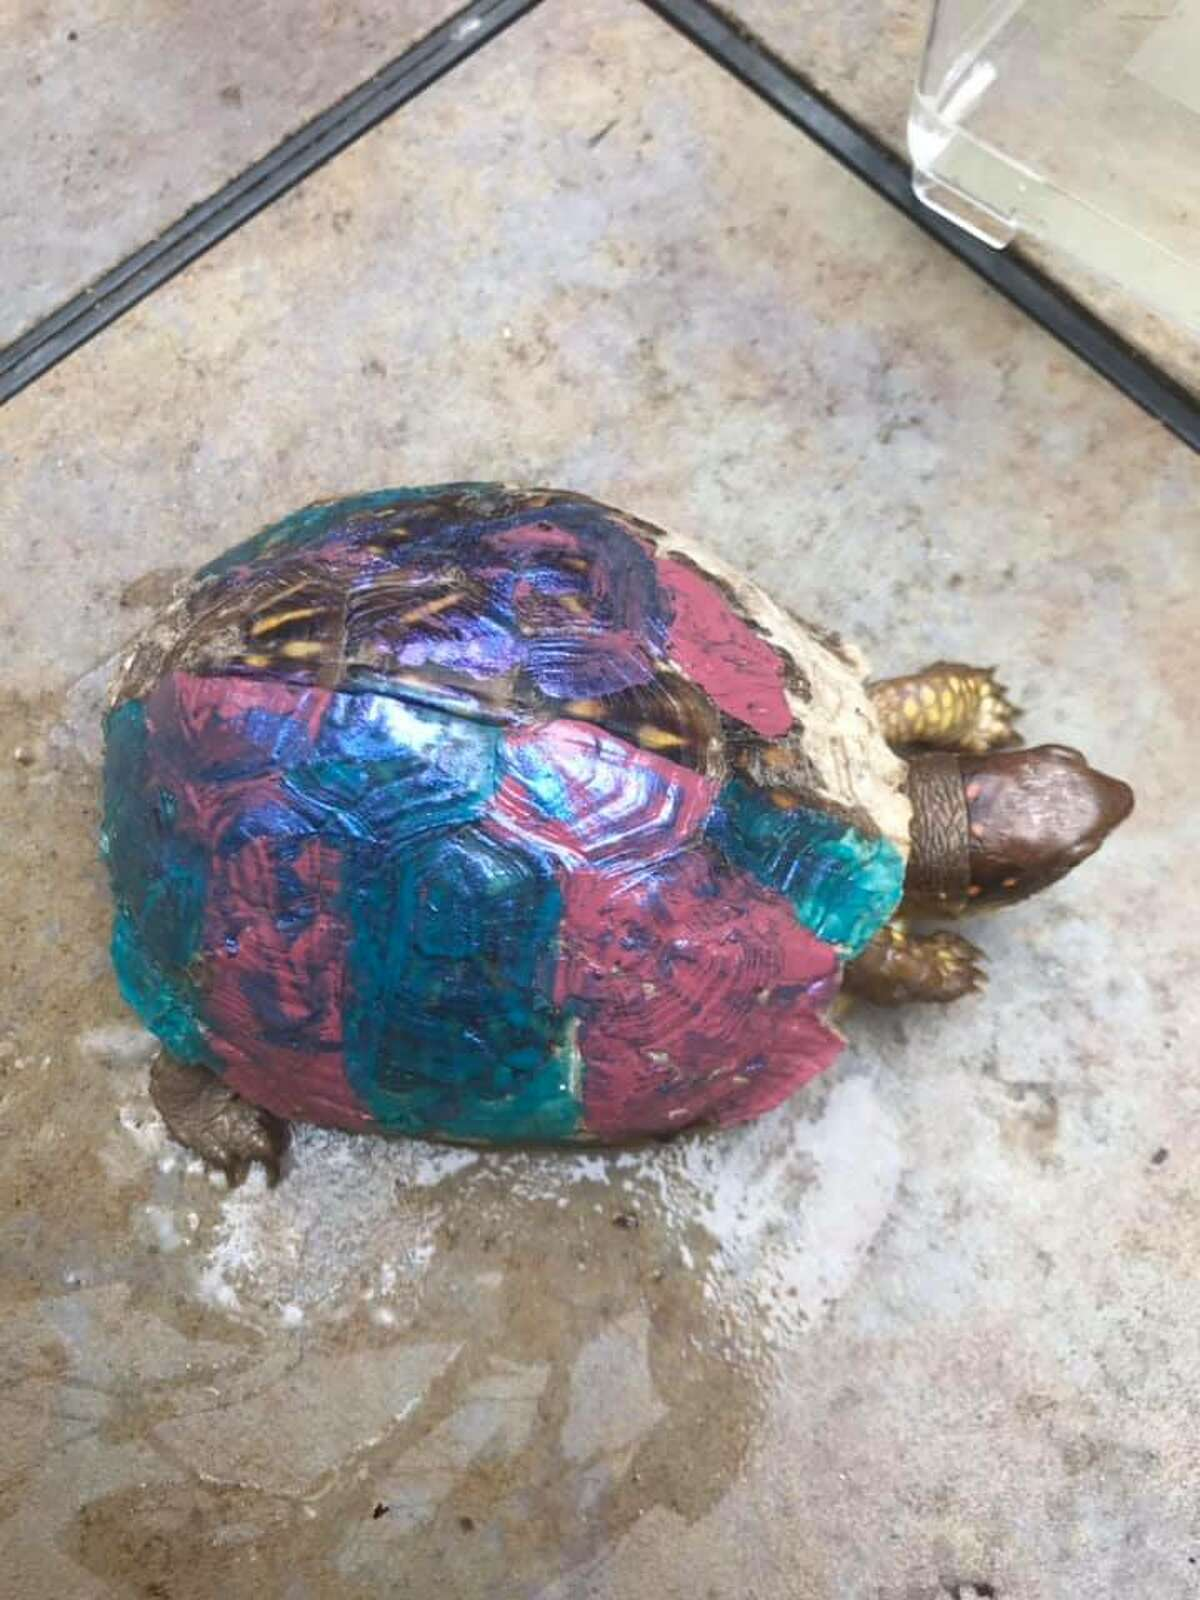 Friends of Texas Wildlife is asking Texans to not paint their turtles after receiving a poor box tortoise covered with many coats of nail polish on its shell.